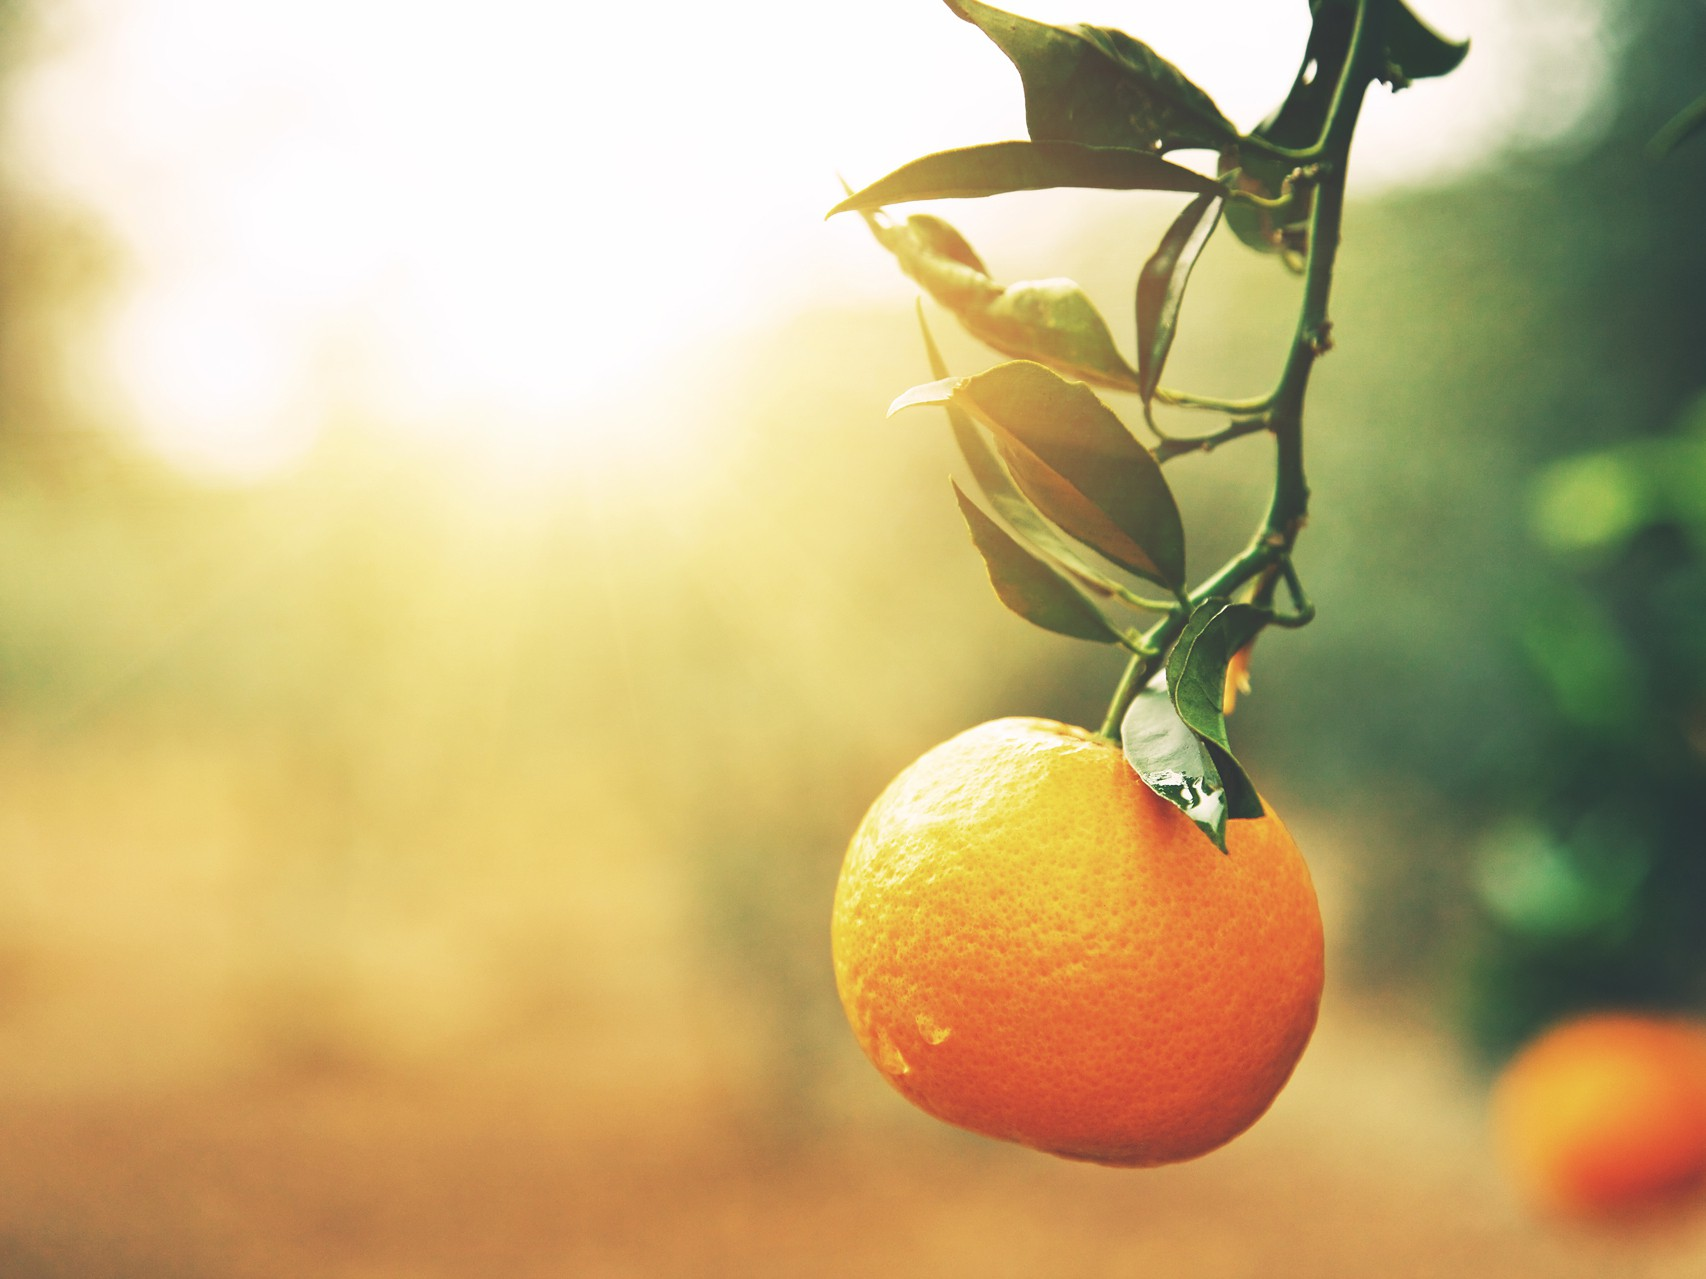 About Citrus Research & Development Foundation Sidebar Image